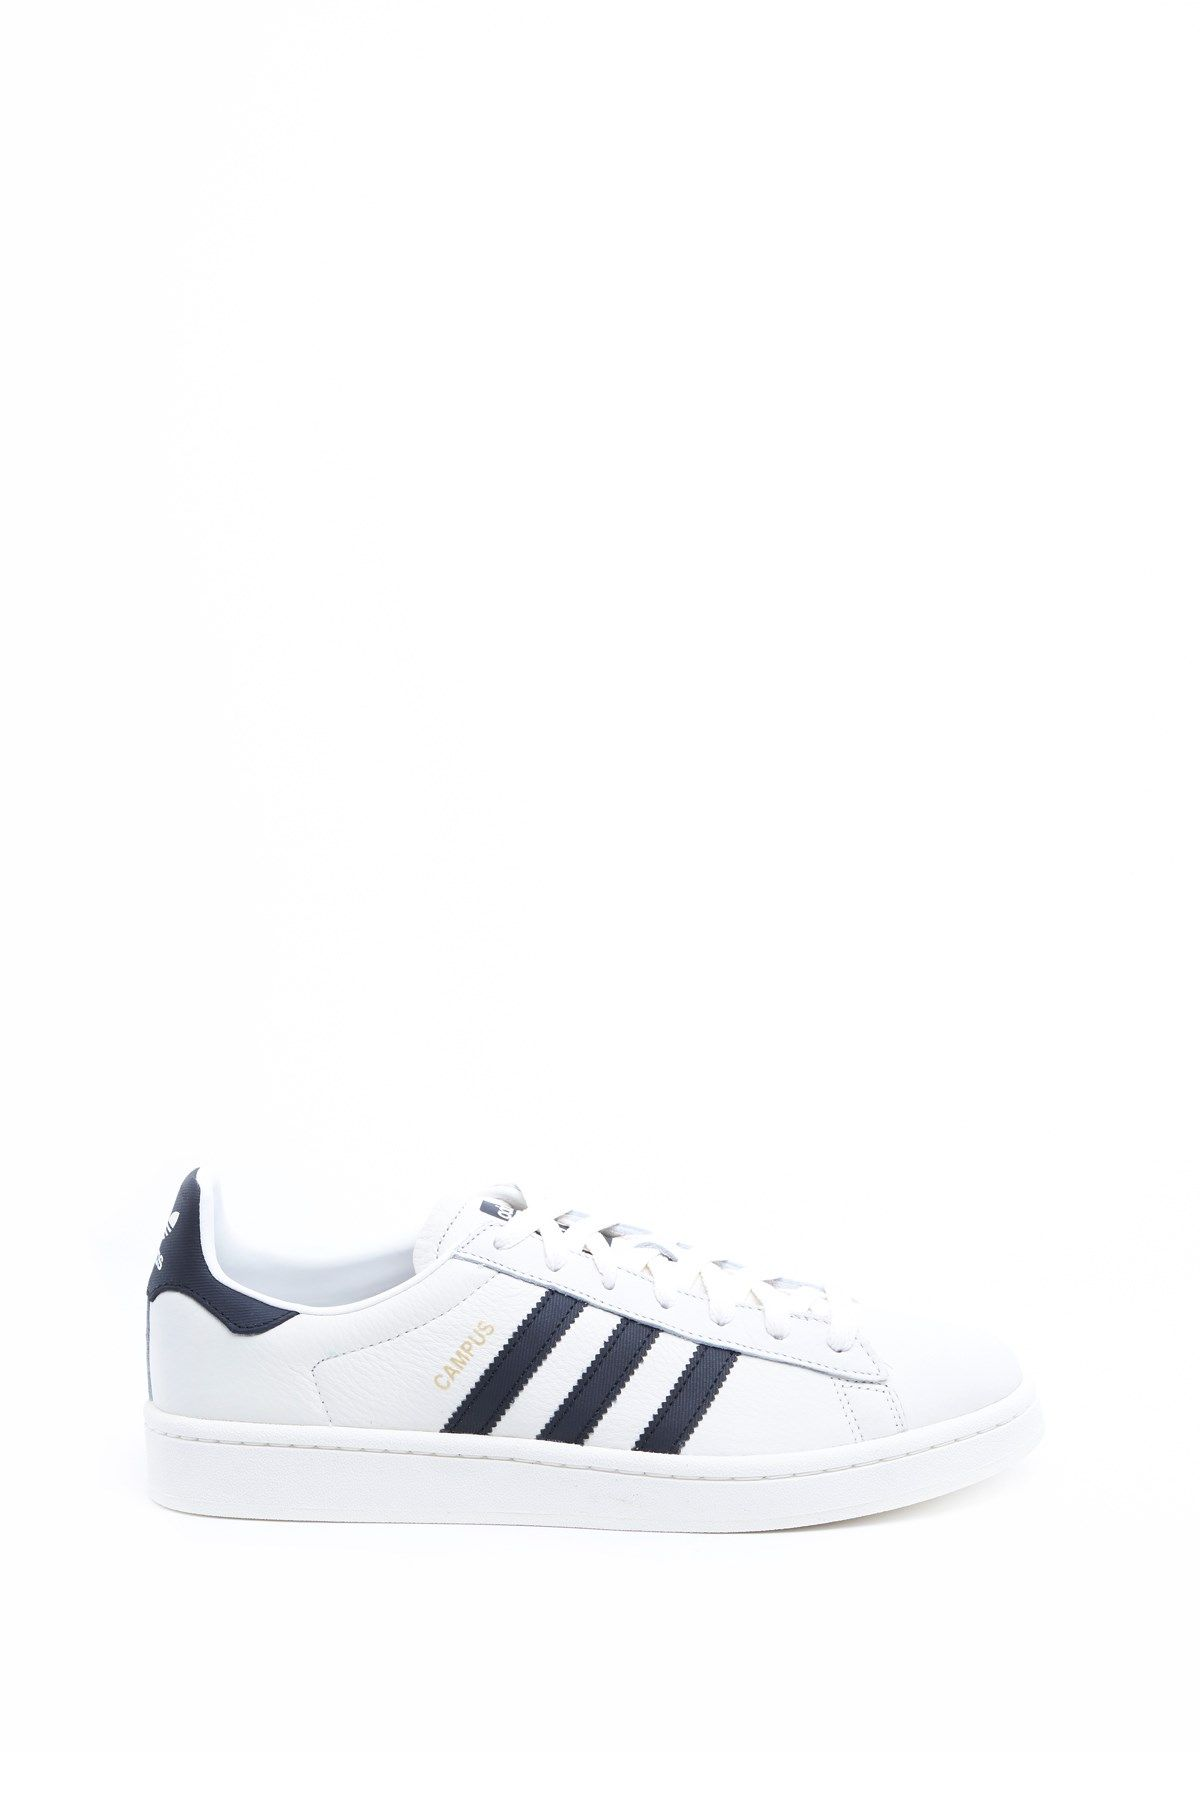 new product 19a8f 4d953 ADIDAS ORIGINALS campus sneakers. adidasoriginals shoes Adidas Originals  Mens, White Leather,